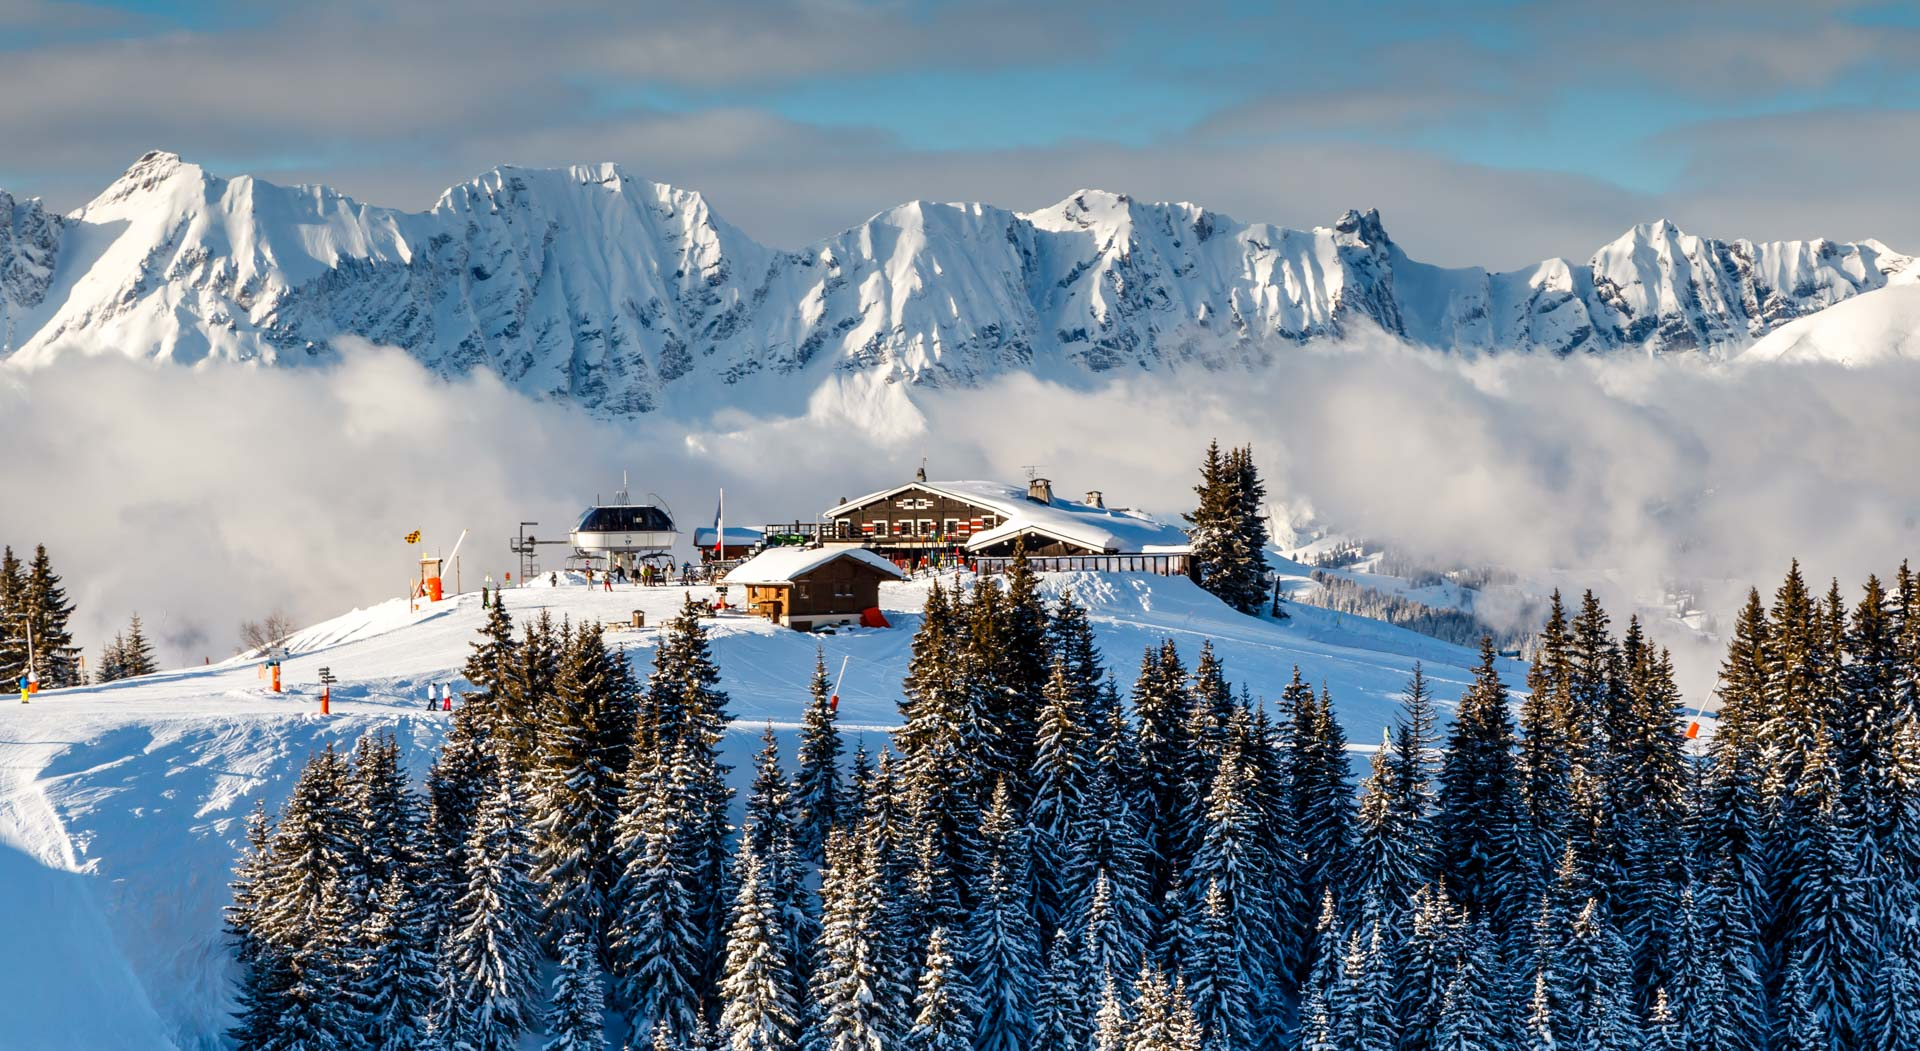 Perched atop a mountain, in front of a sea of clouds are a chair lift and a mountainside restaurant in Megeve